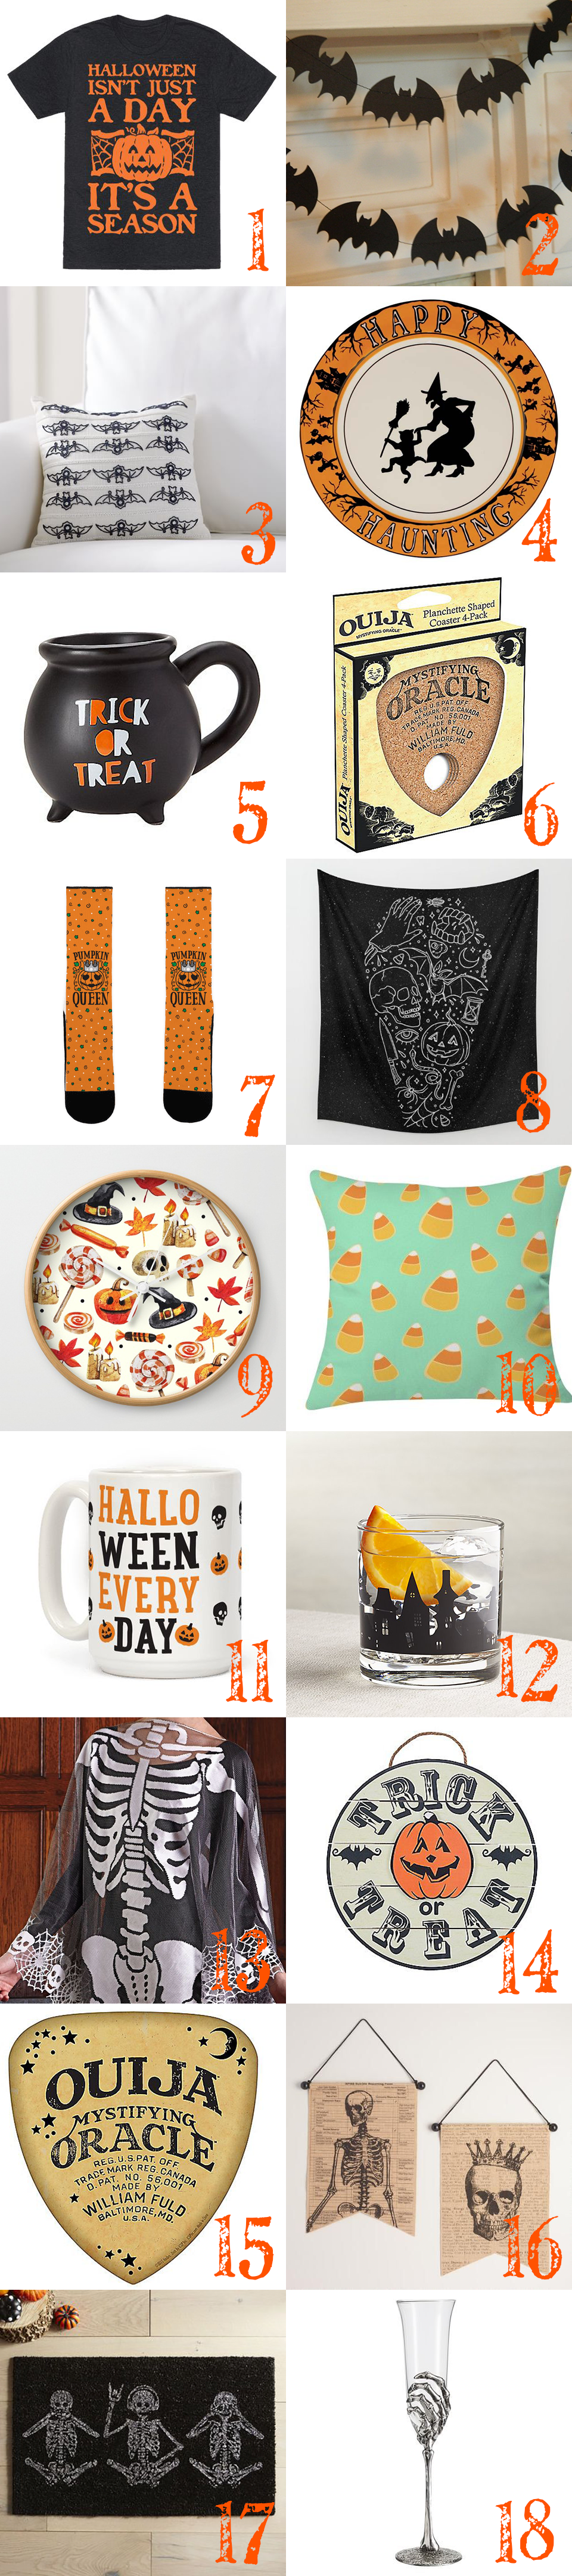 Halloween 2016 Wish List: It's that time of year to ask The Great Pumpkin for all the Halloween goodies on our wish list! Here's everything on my Halloween 2016 wish list + links. | spookylittlehalloween.com